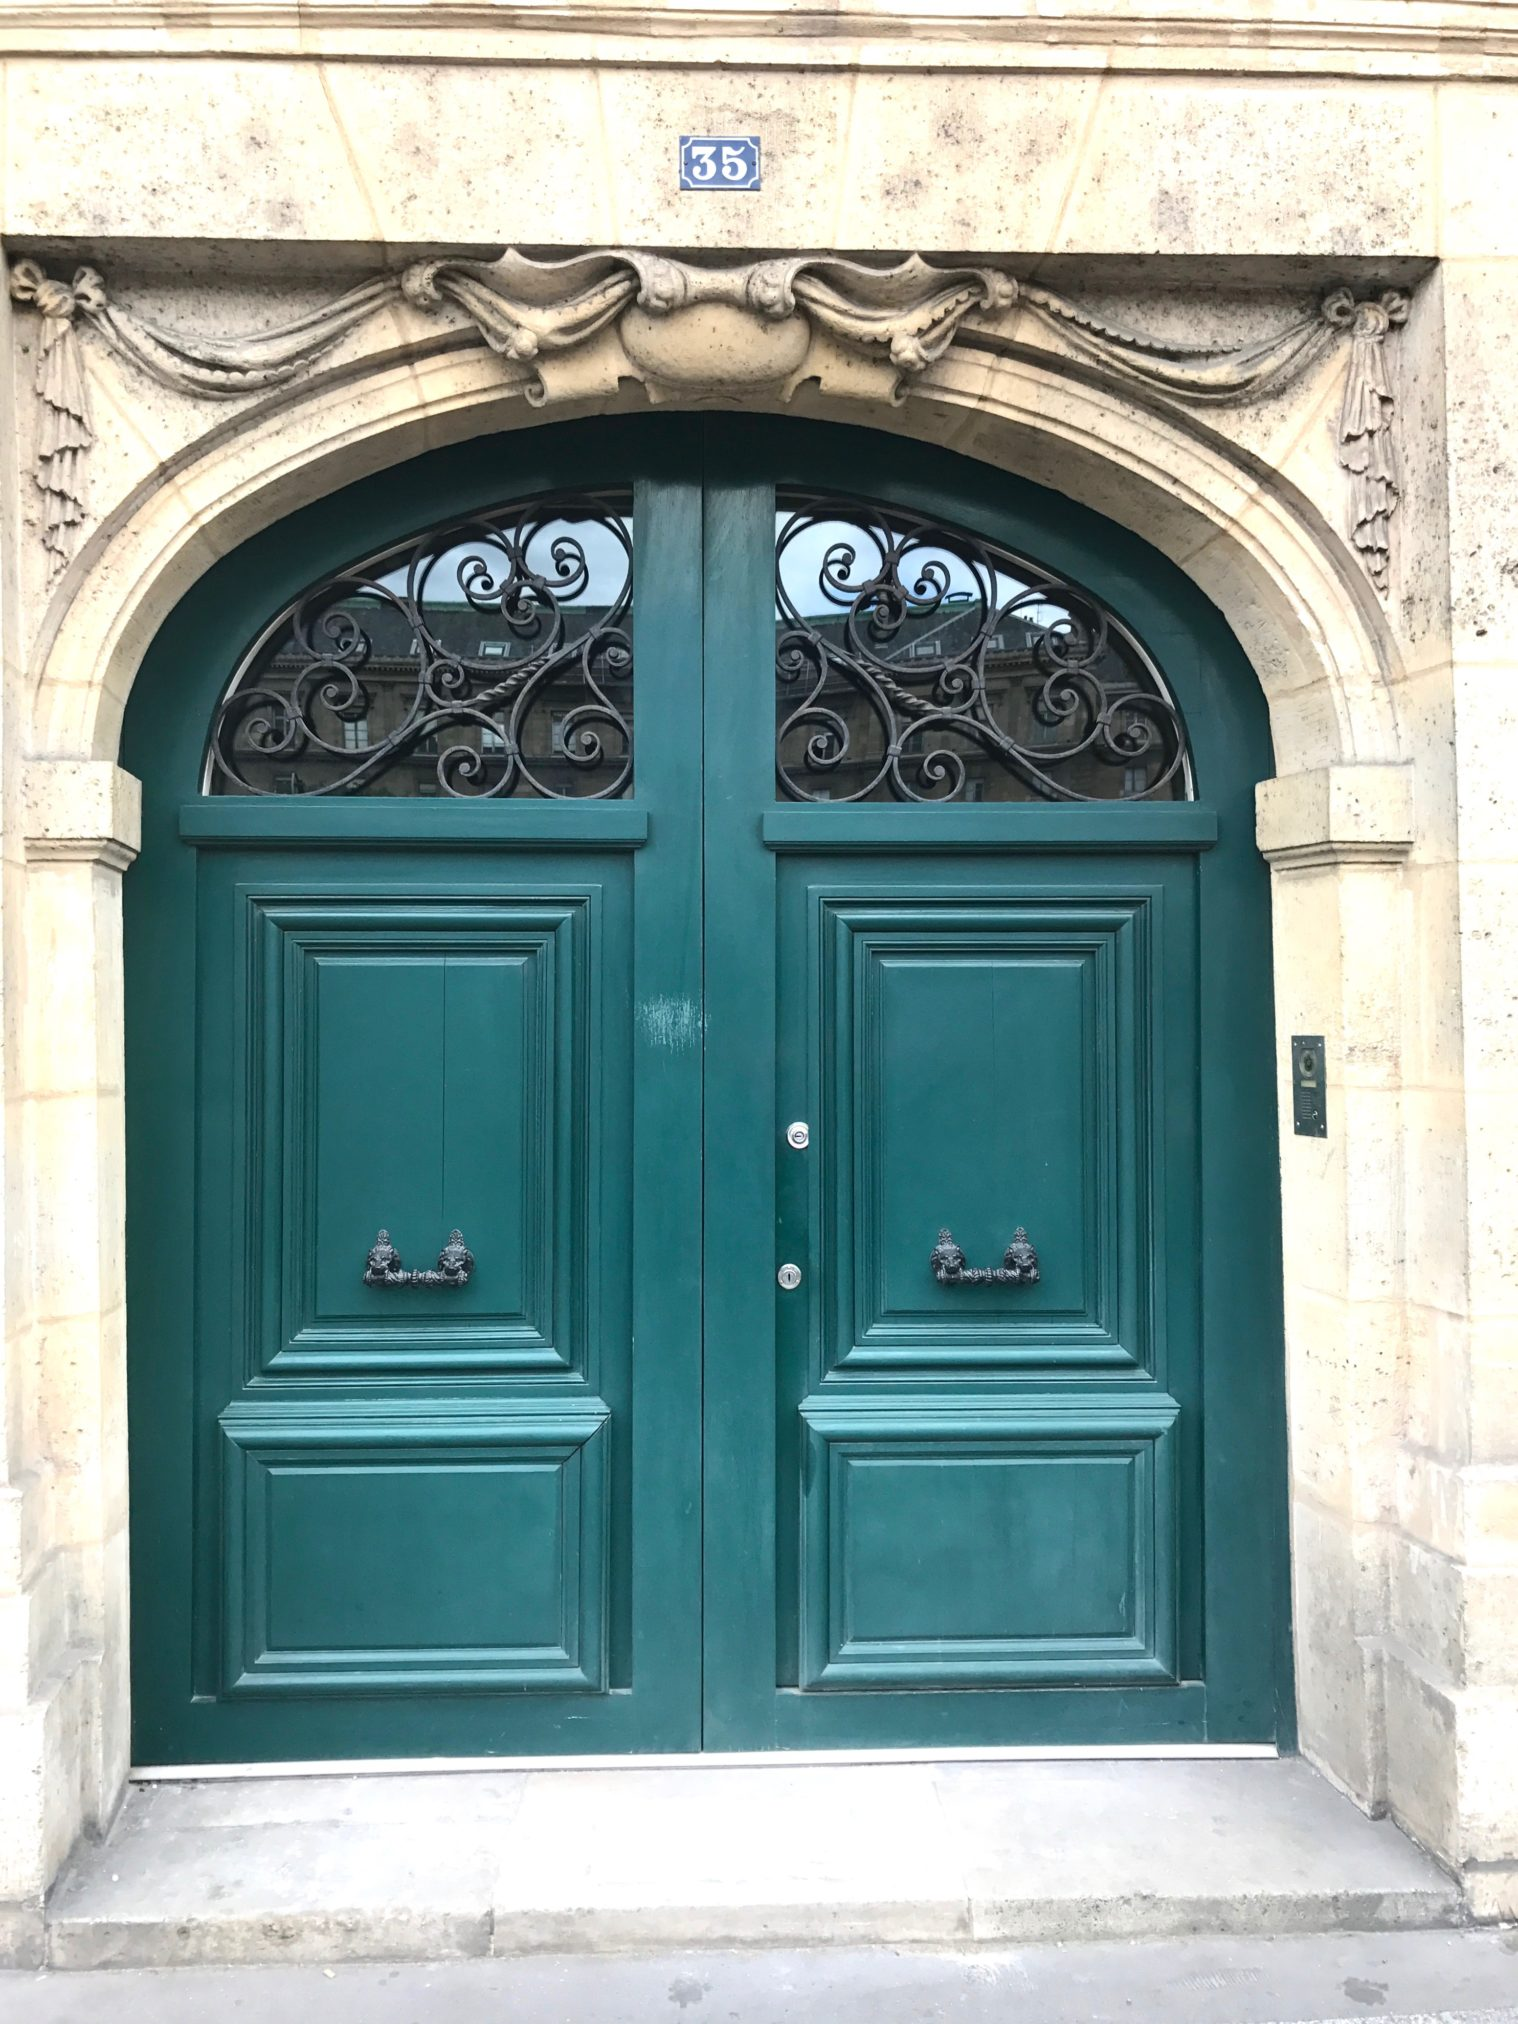 After traveling to Paris I fell in love with the colorful and gorgeous doors, to see more inspirational front doors from the streets of paris head over to www.homewithkeki.com #interiors #travel #paris